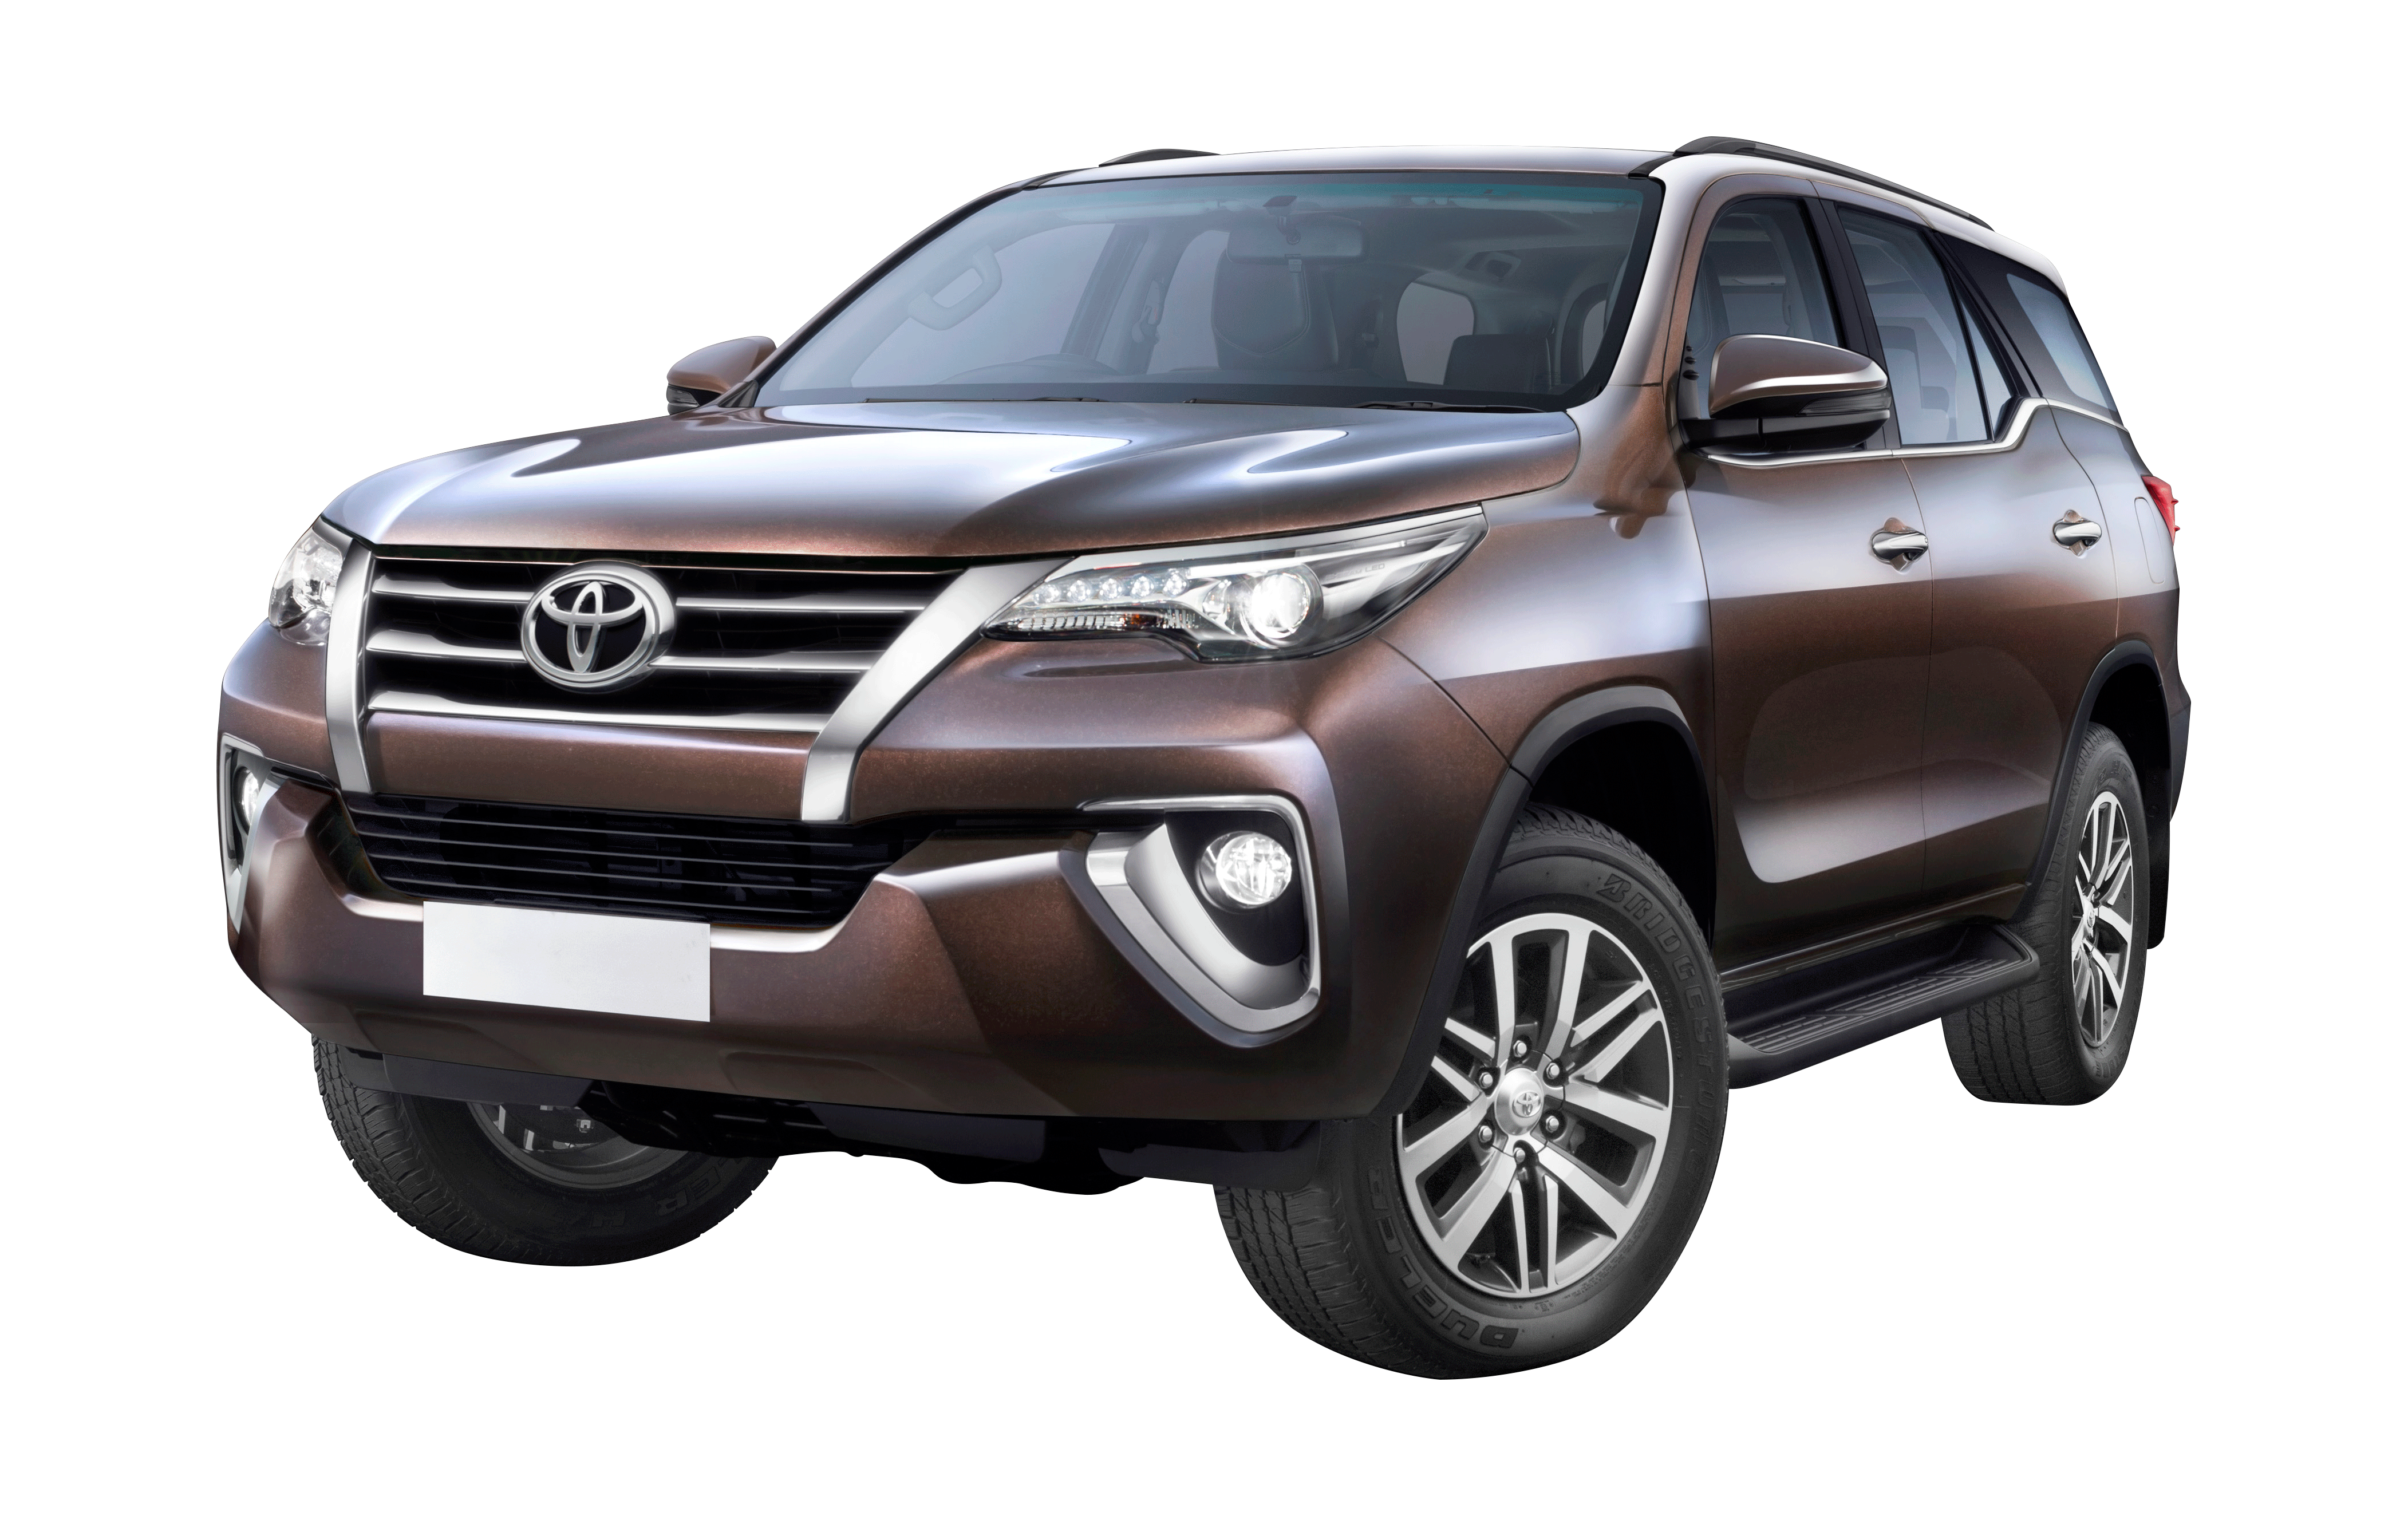 Toyota Fortuner PNG Image Free Download searchpng.com.